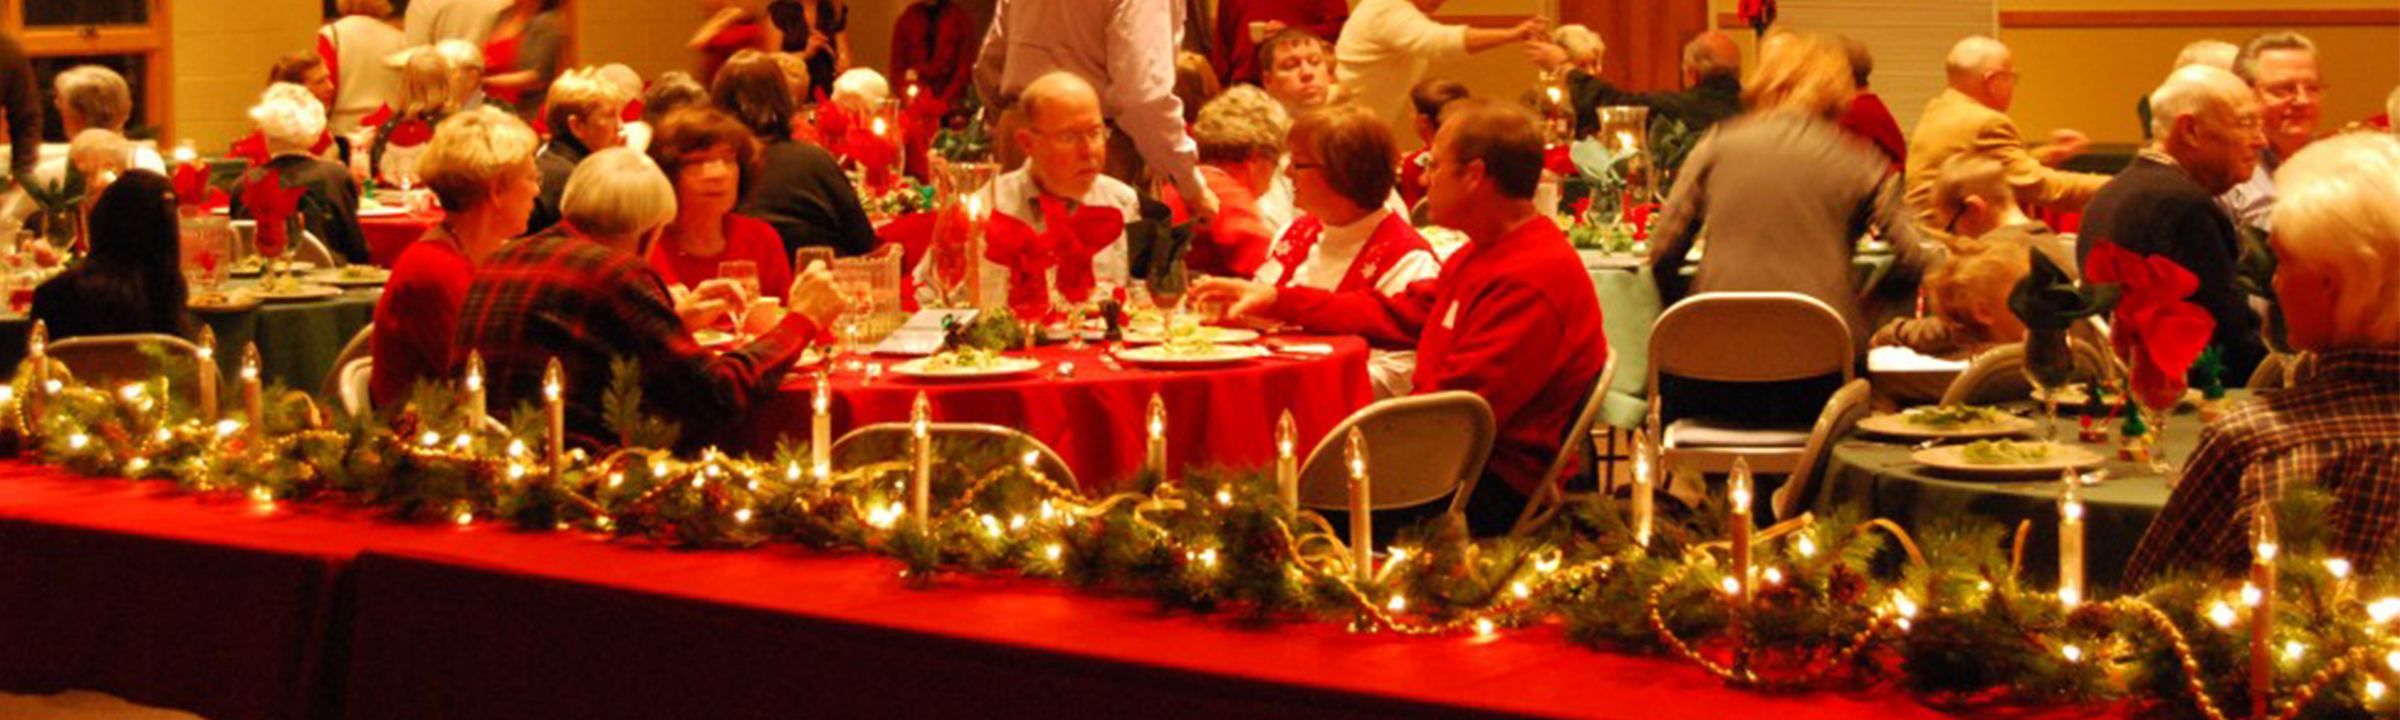 Lakeside Community Christmas Dinner  The Front Porch